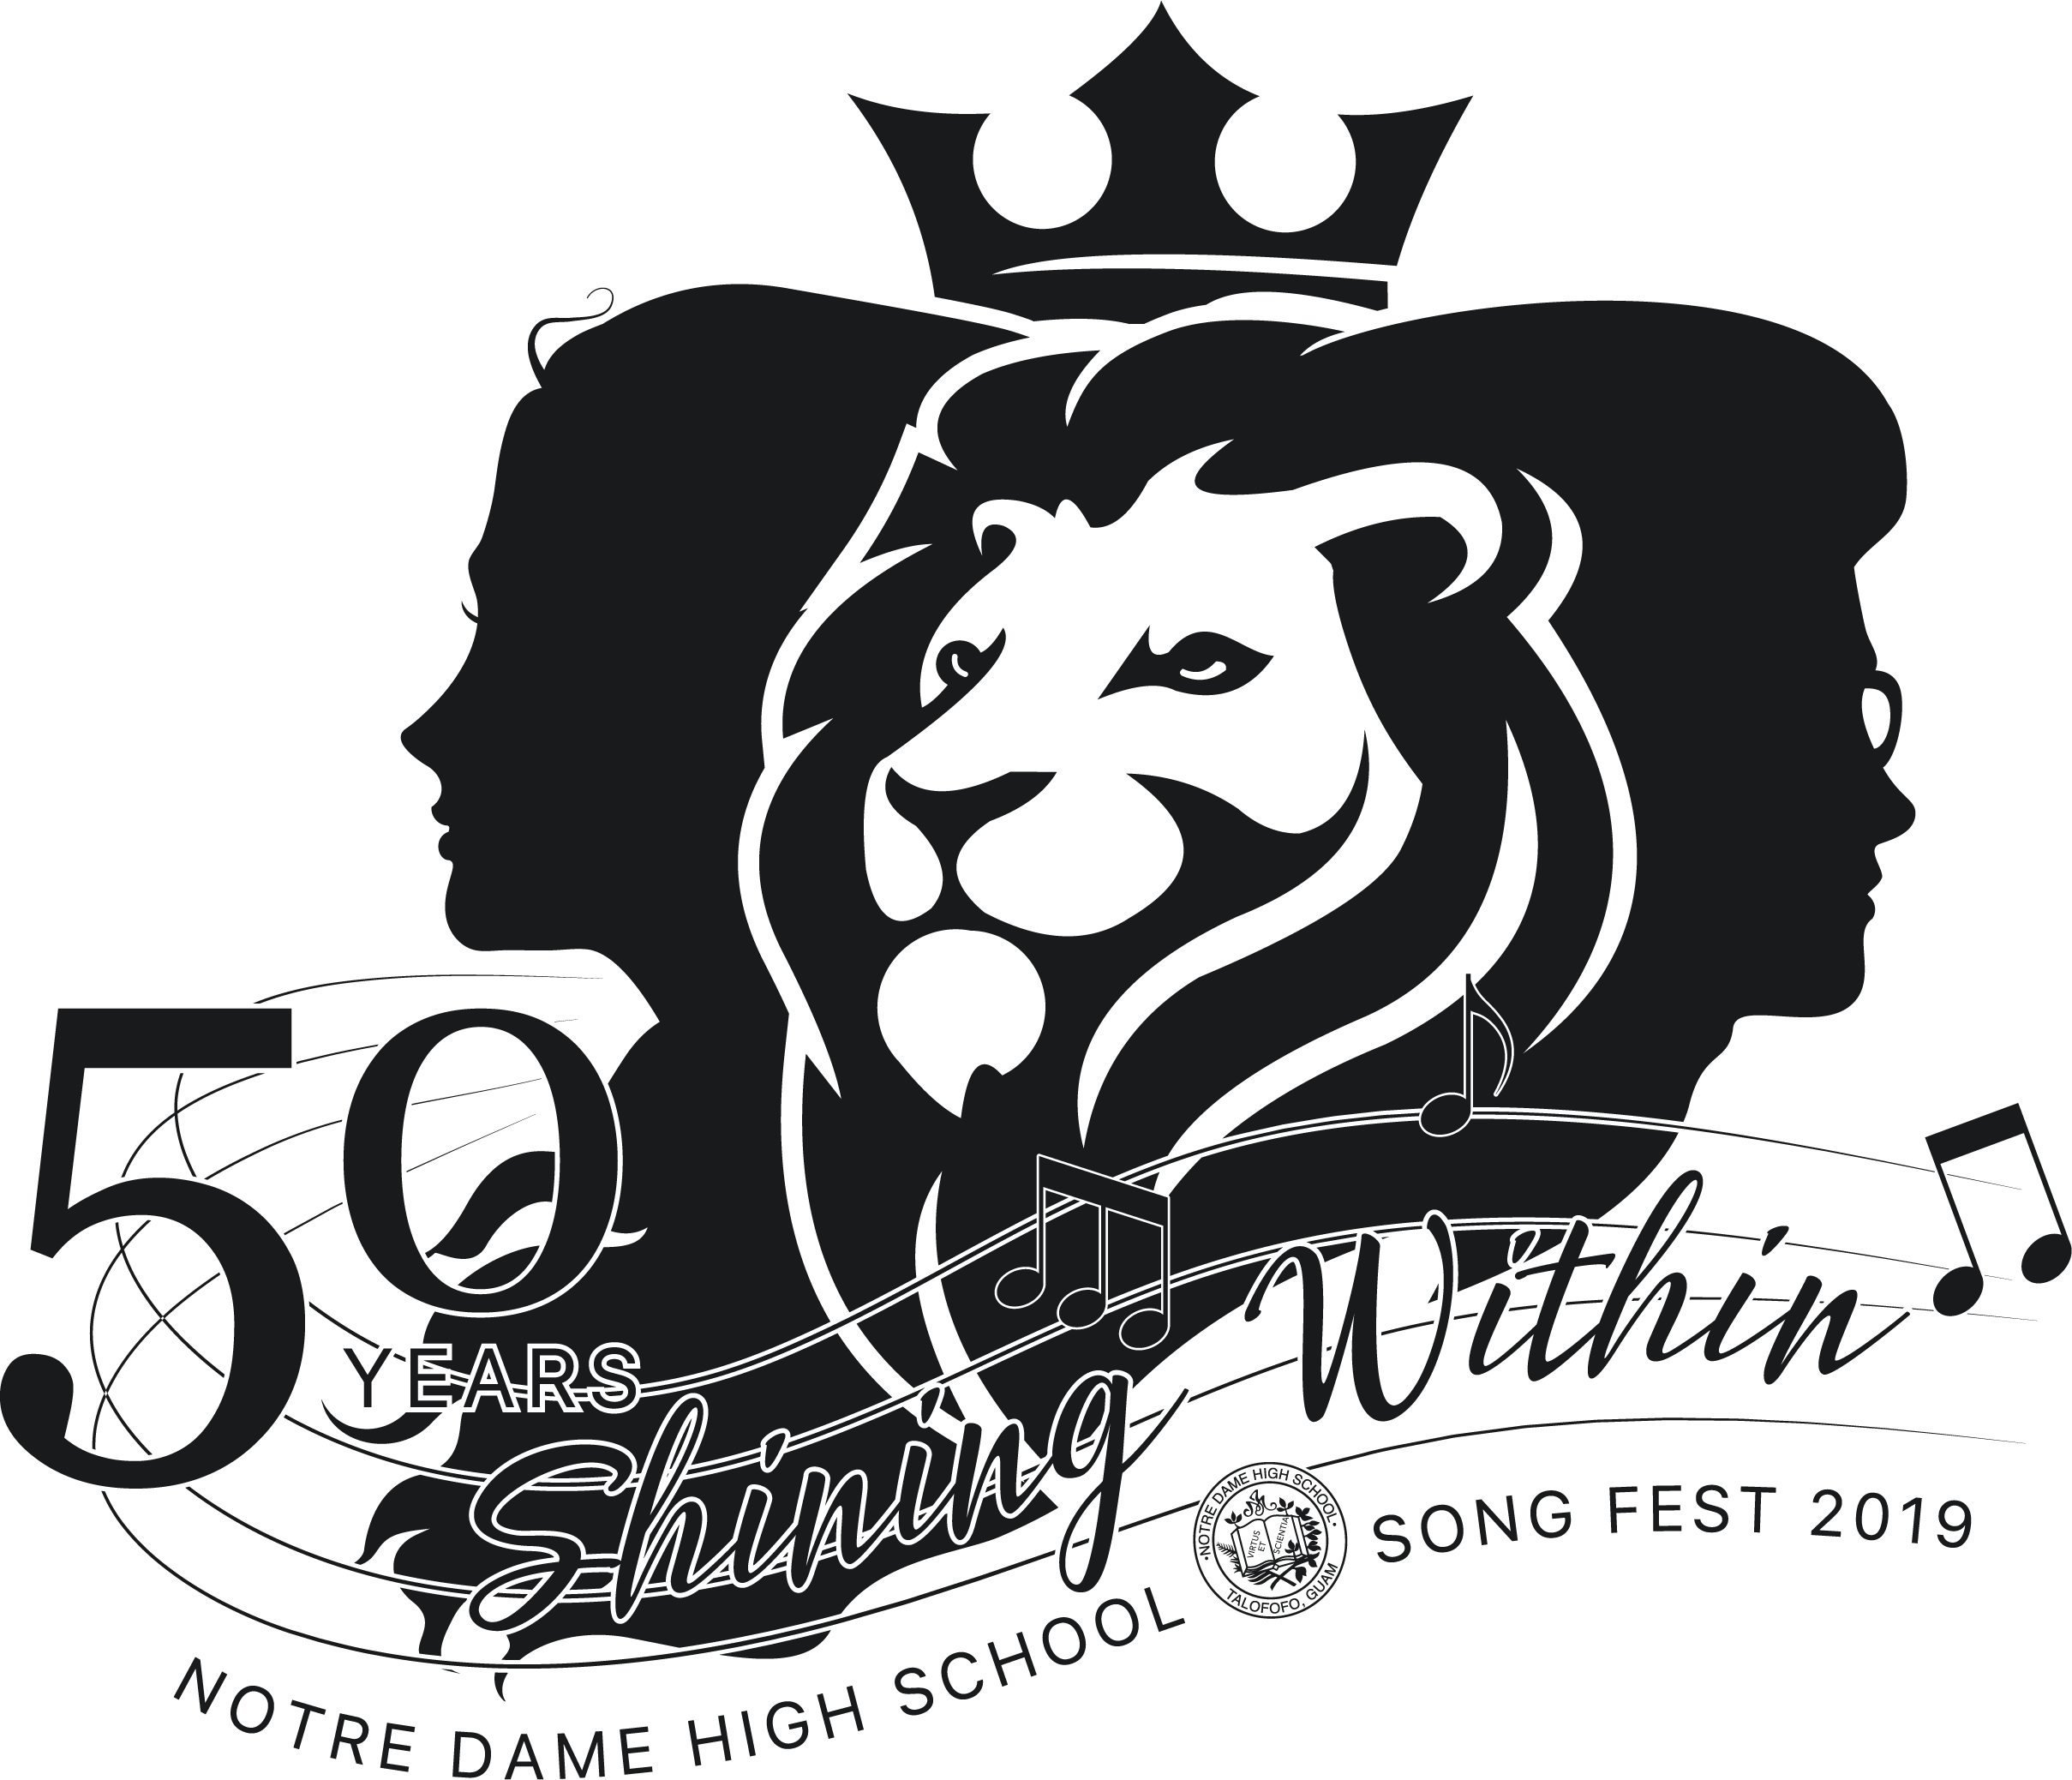 ndhs_song_fest_2019_logo_black-01